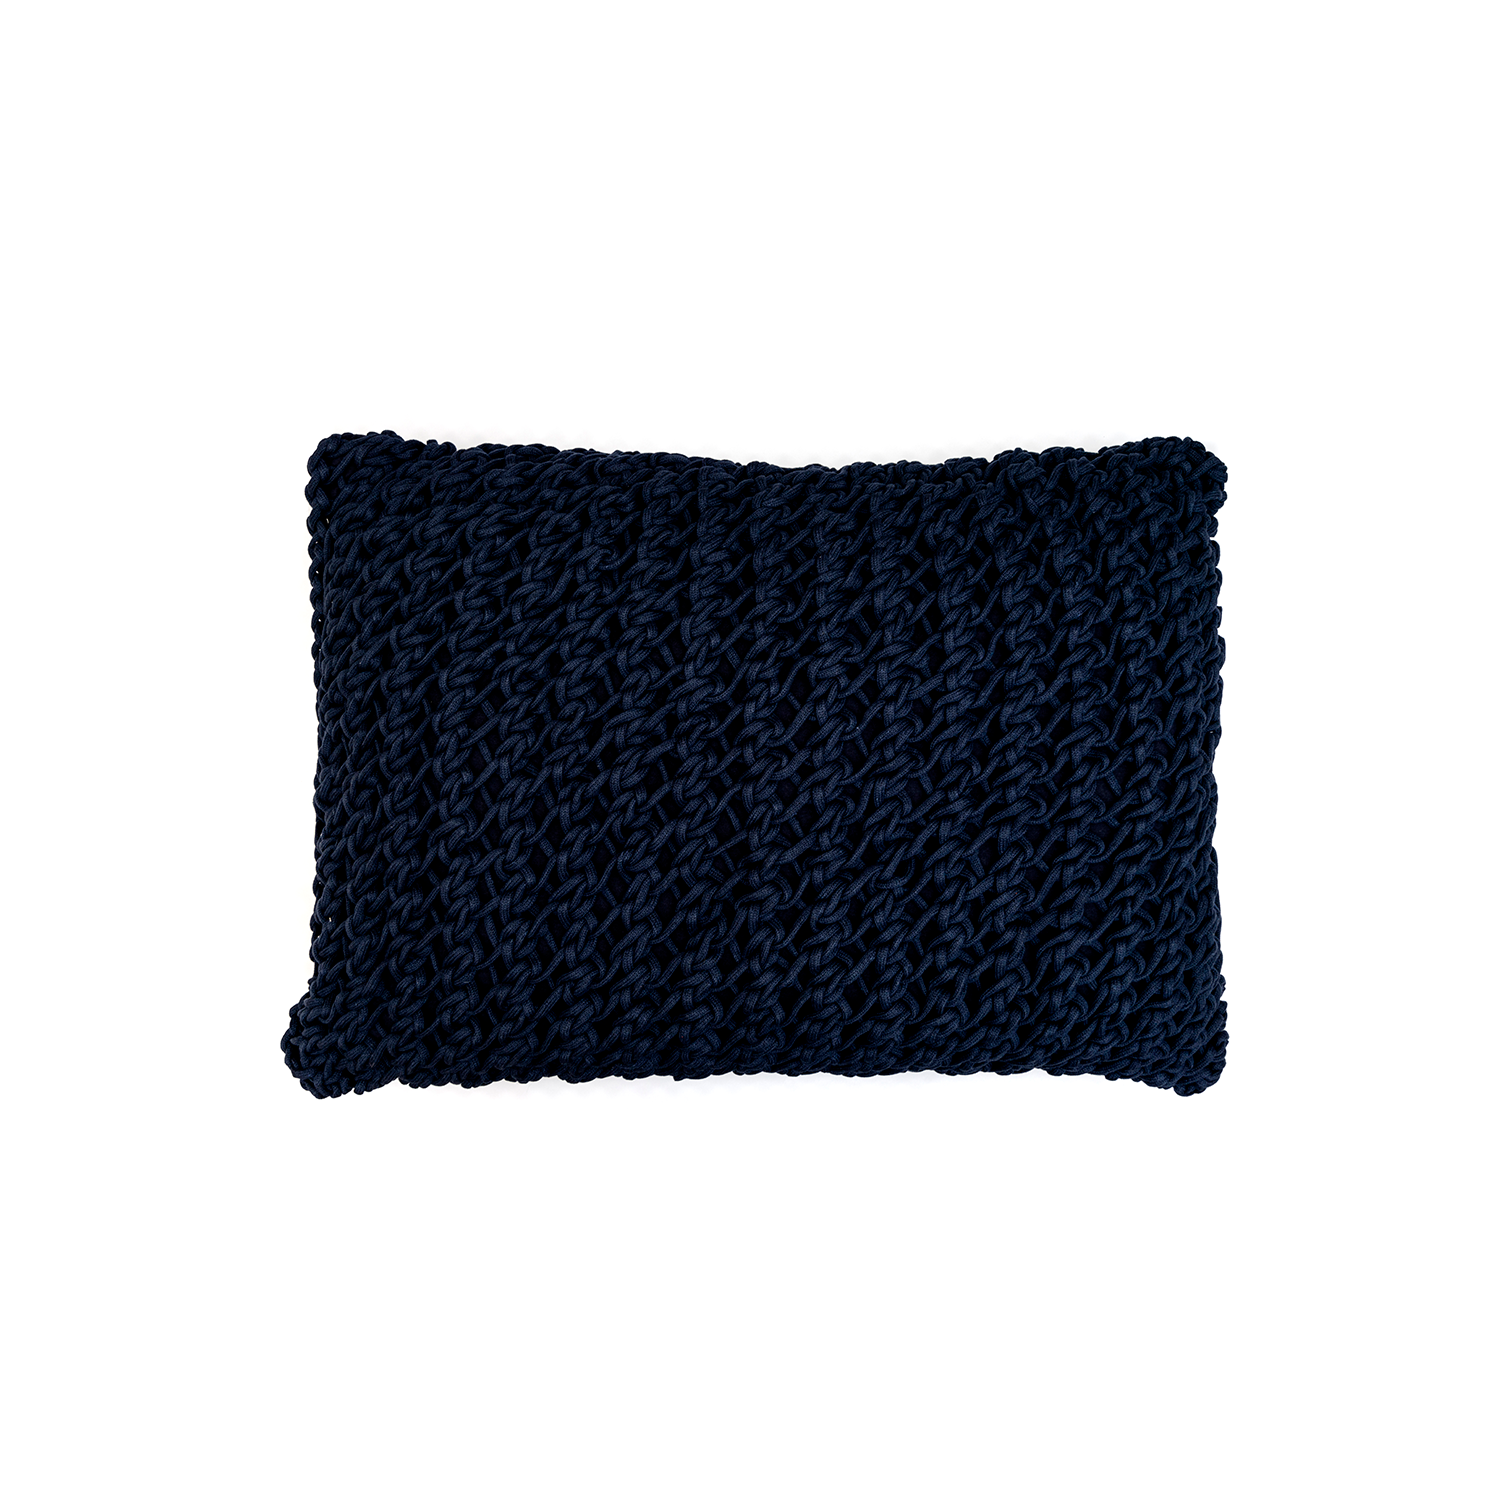 Gaia Neo Cushion Large - The Gaia Neo Cushion is carefully knitted within a trained community of women that found in their craft a way to provide for their families. The outdoor collection is made with synthetic fibres, resistant to weather exposure. The use of neoprene brings comfort and technology to the cushions.  The front panel is in neoprene combined with hand woven nautical cord, made in Brazil.  The inner cushion is in Hollow Fibre, made in the UK.  Please enquire for more information and see colour chart for reference.  | Matter of Stuff